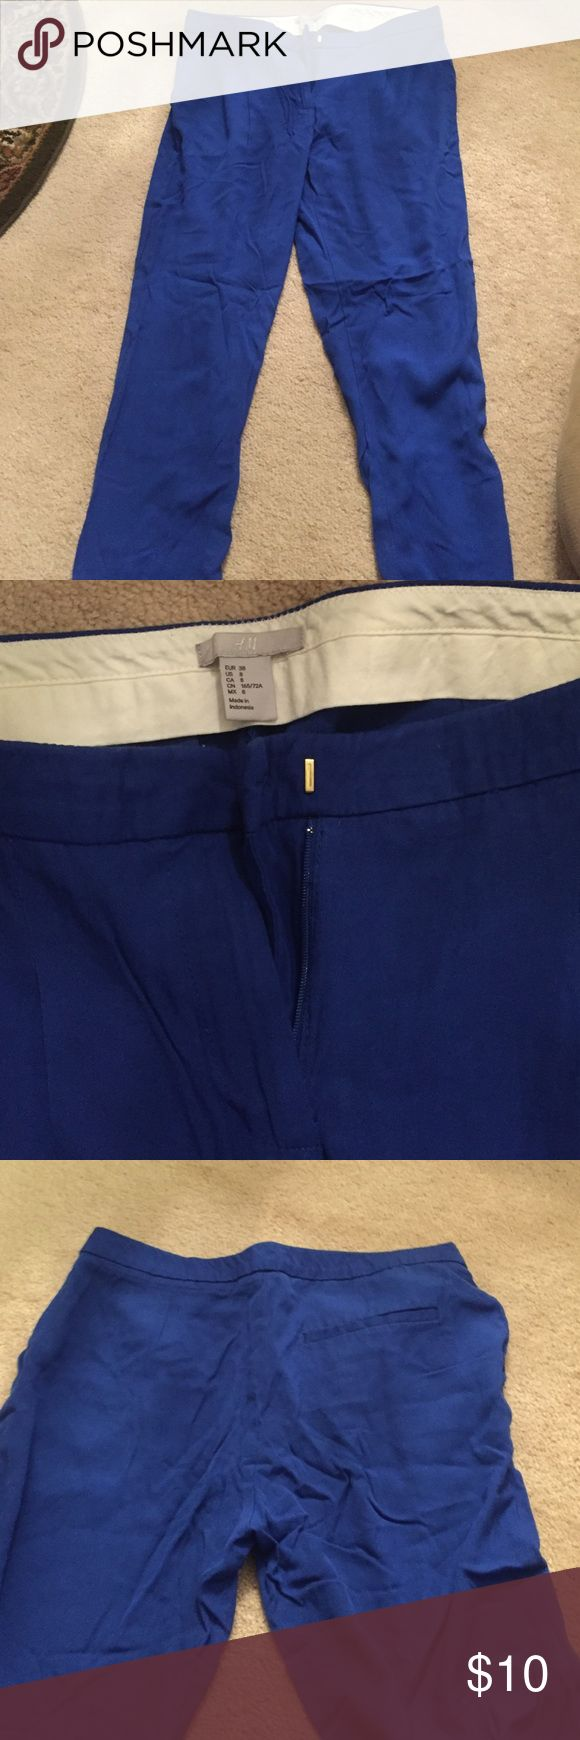 H&M trousers Royal blue, soft trousers, gently worn, great condition H&M Pants Ankle & Cropped